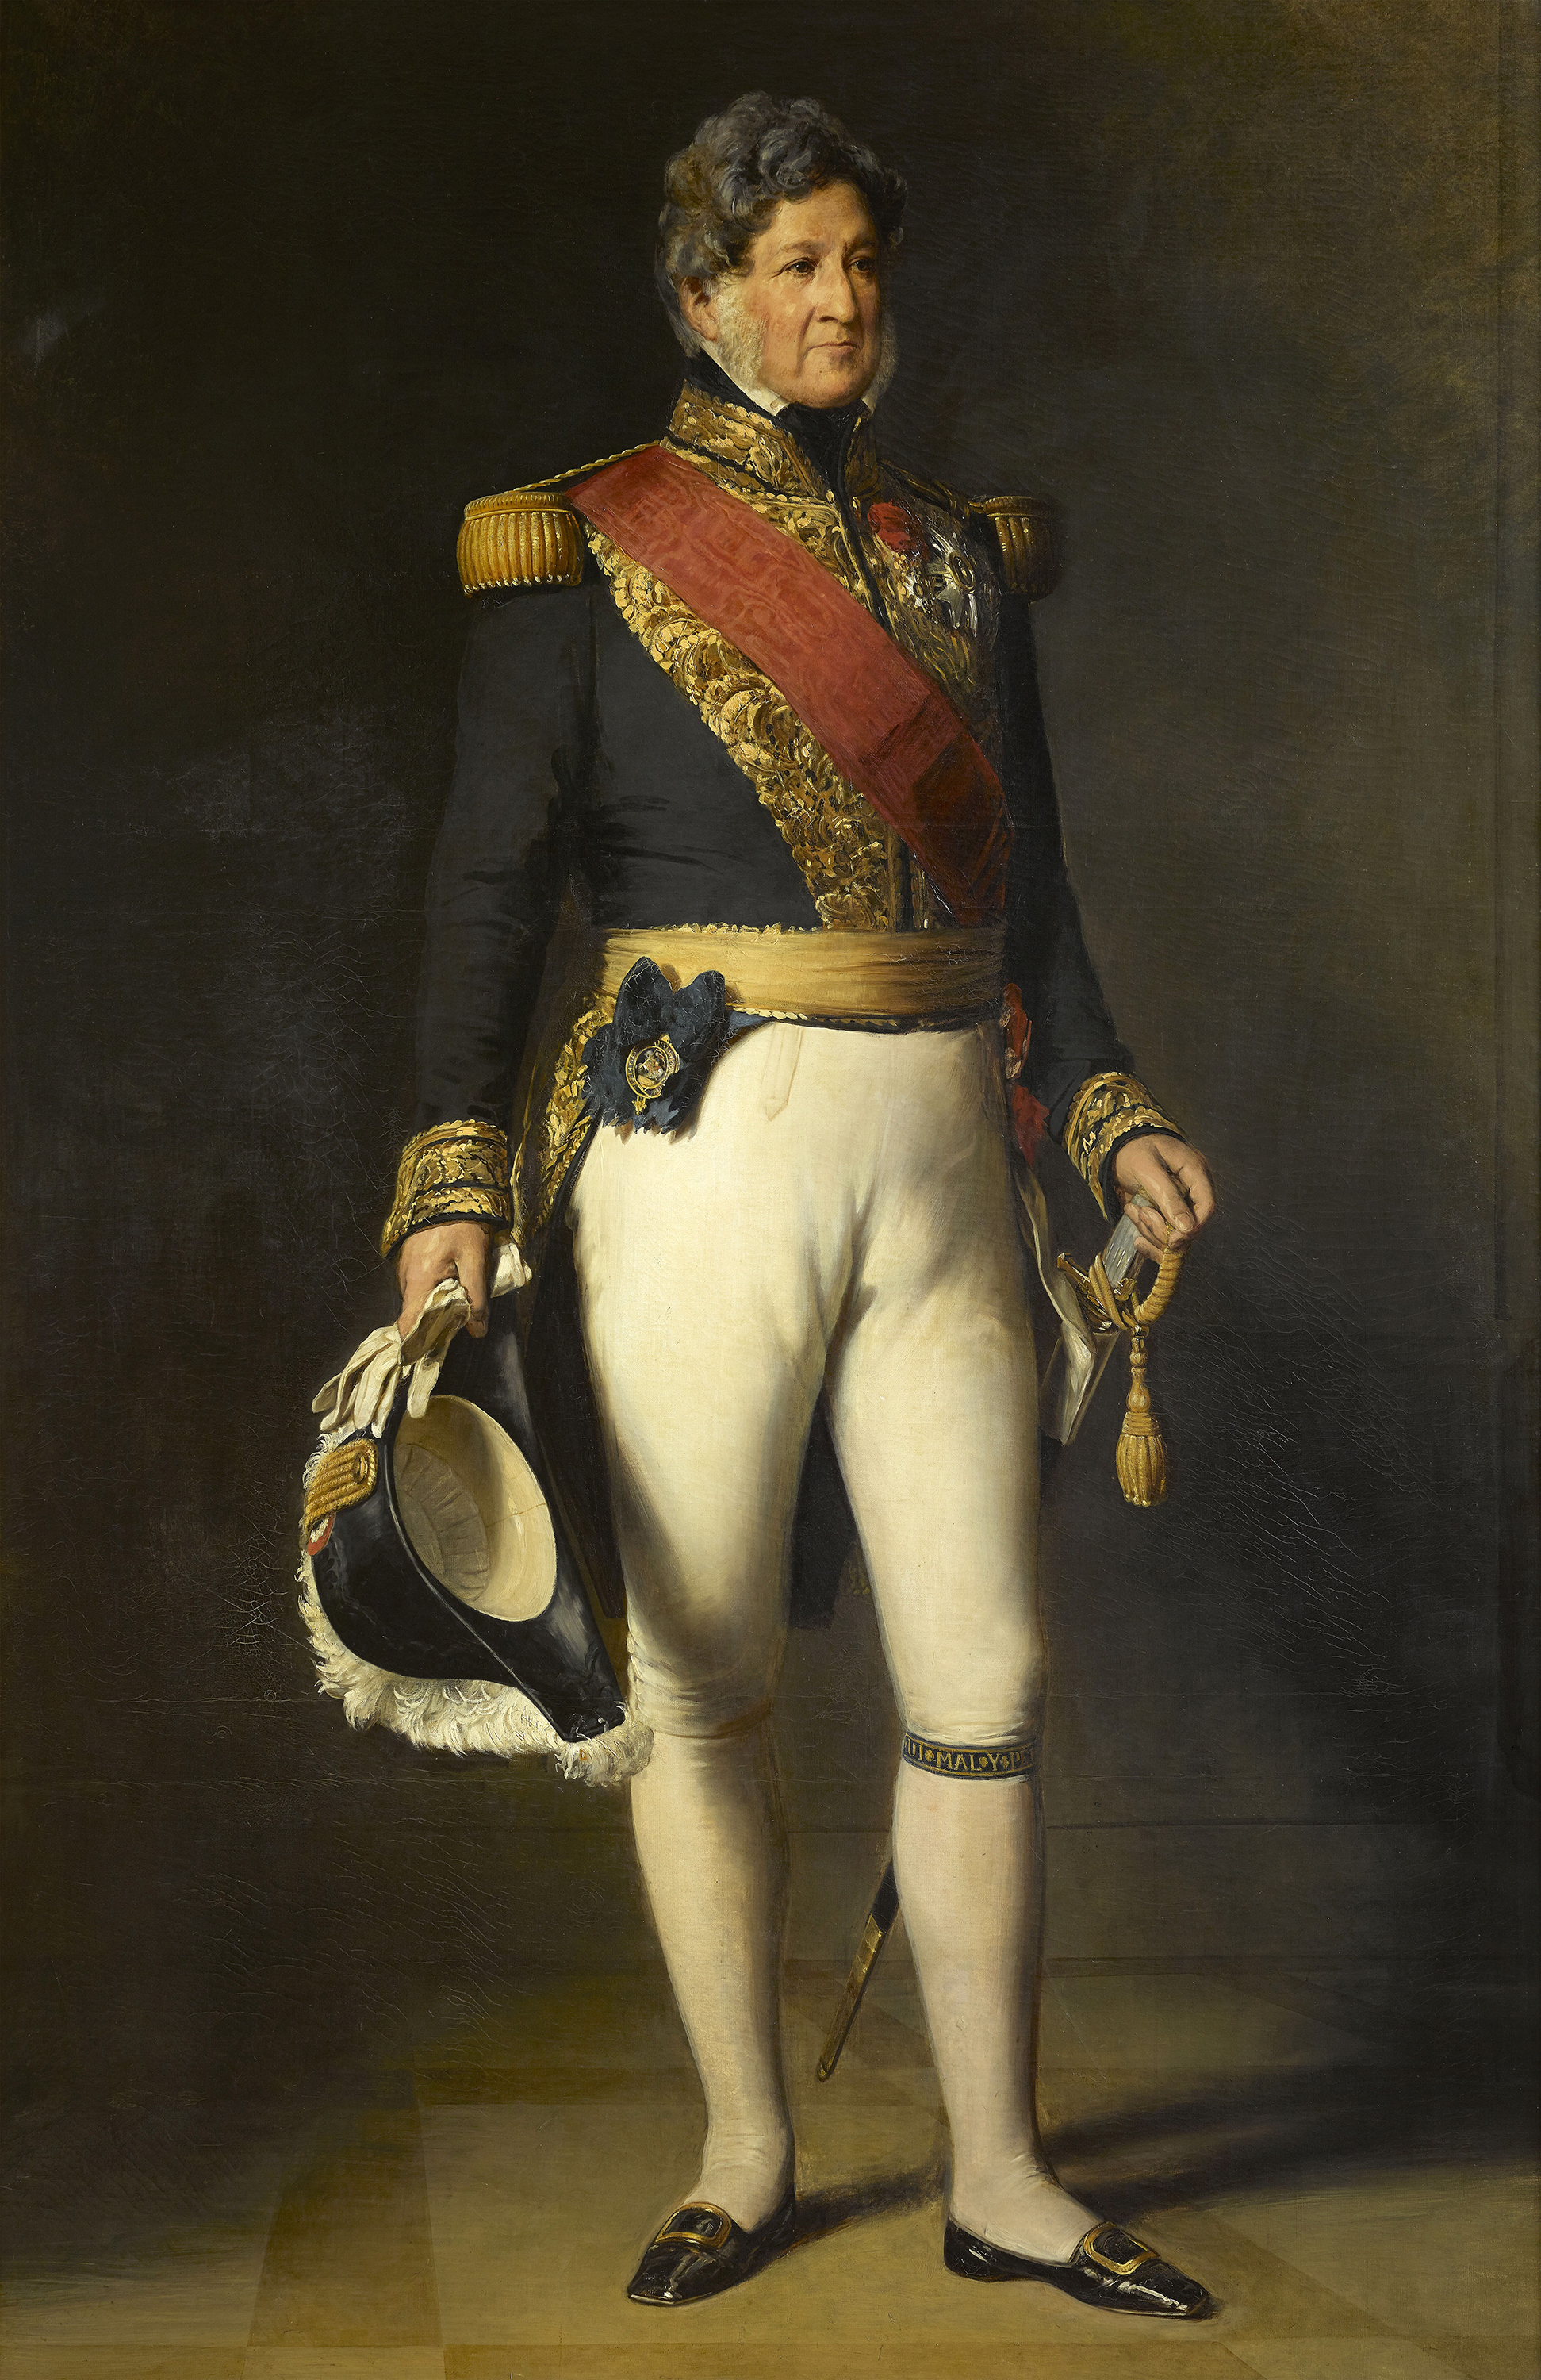 Portrait of Louis Philippe I (1773-1850), King of the French (1830-1848), Duke of Orléans (Louis Philippe III) from 1814 to 1830, 1846 | Portraits of Kings